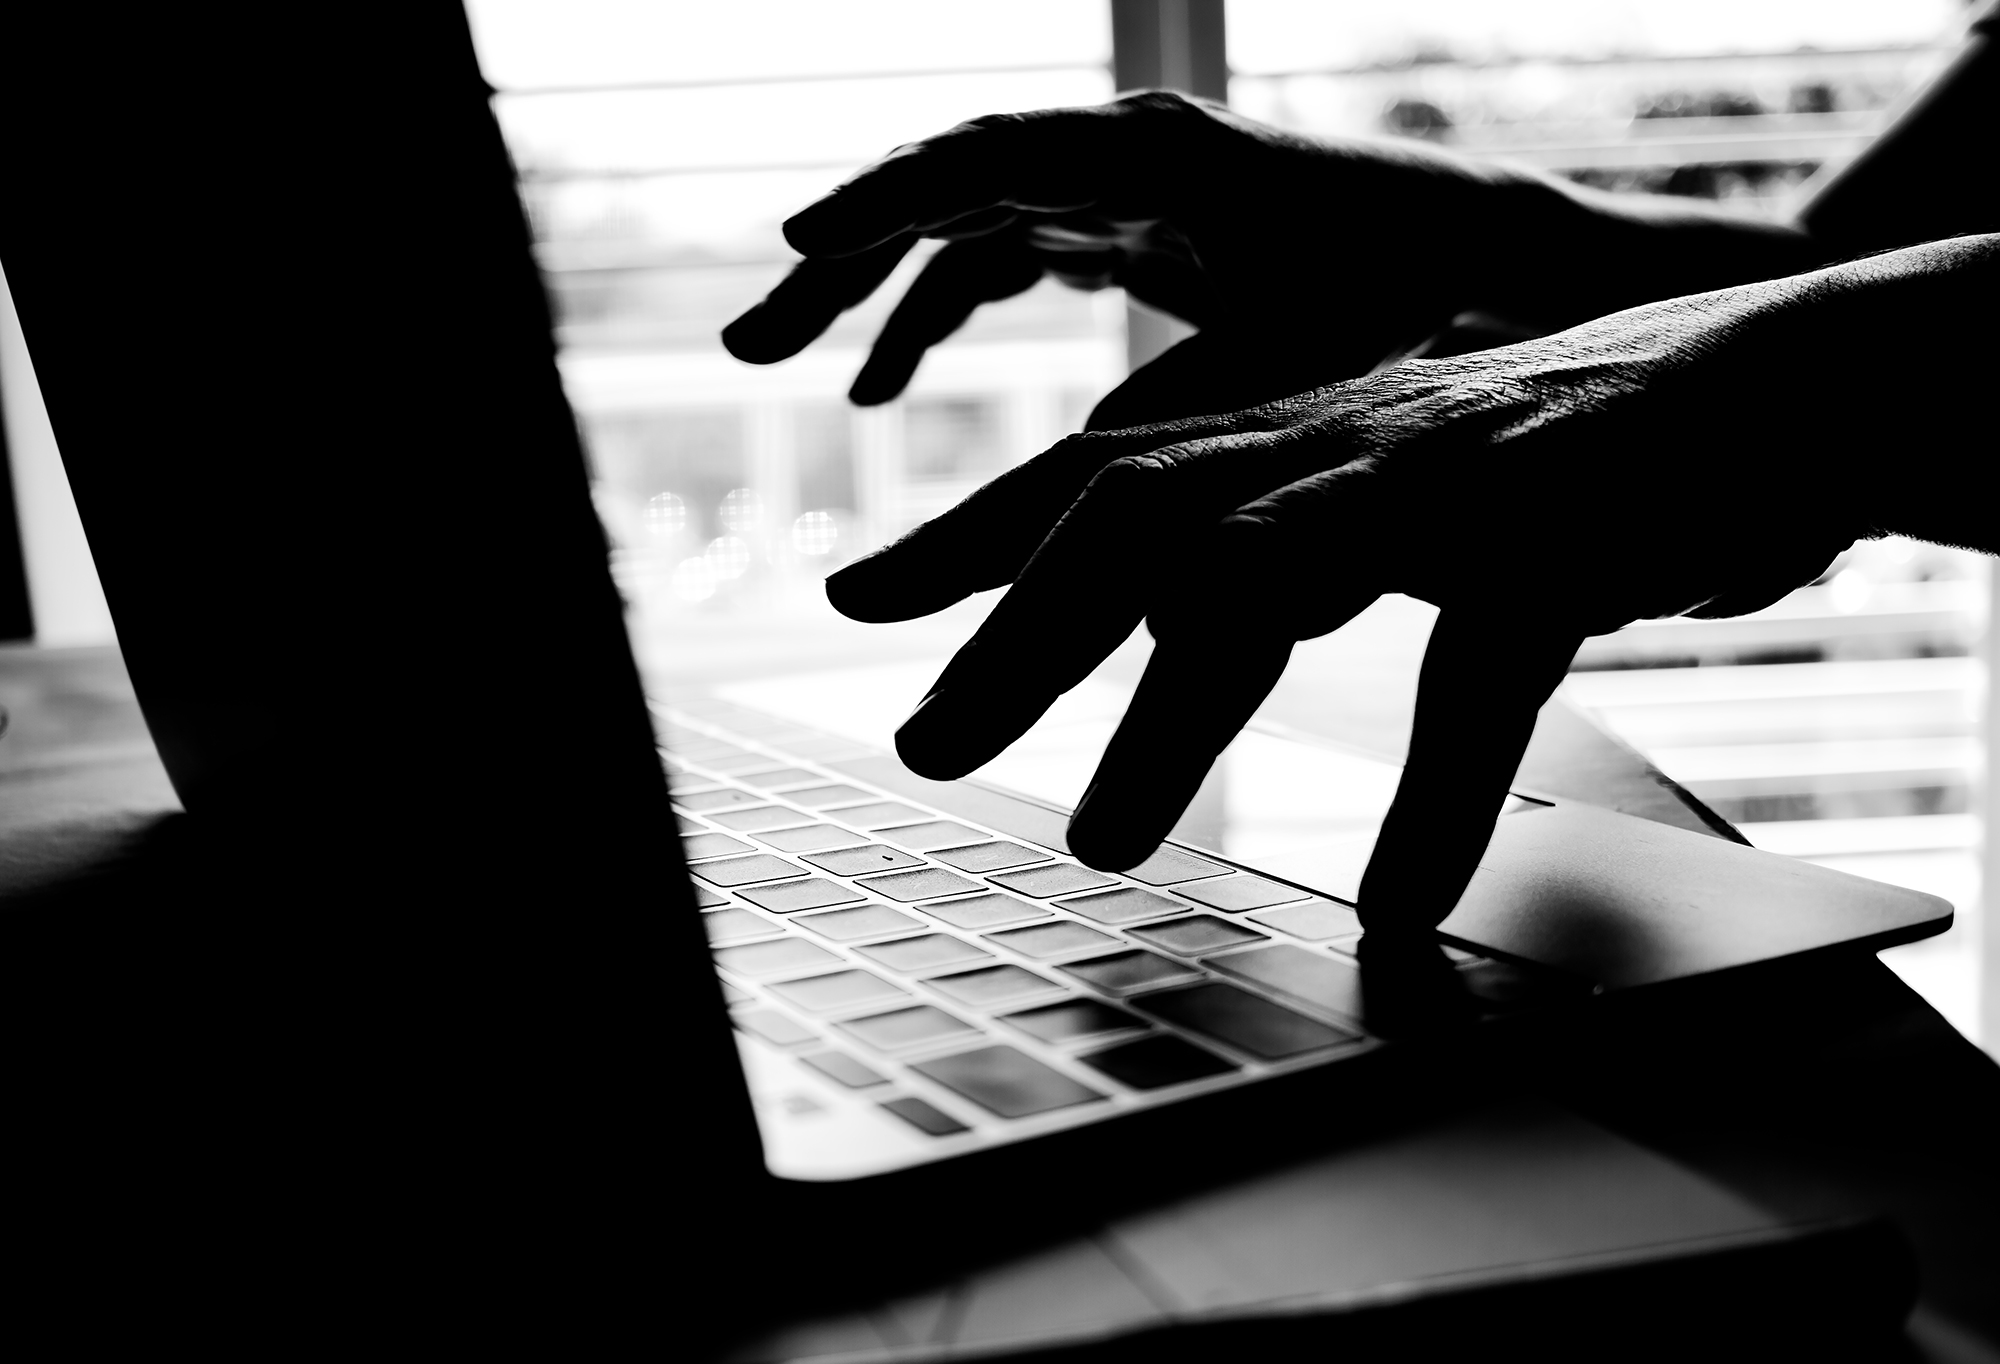 Unknown person using a laptop. (Image: Shutterstock)